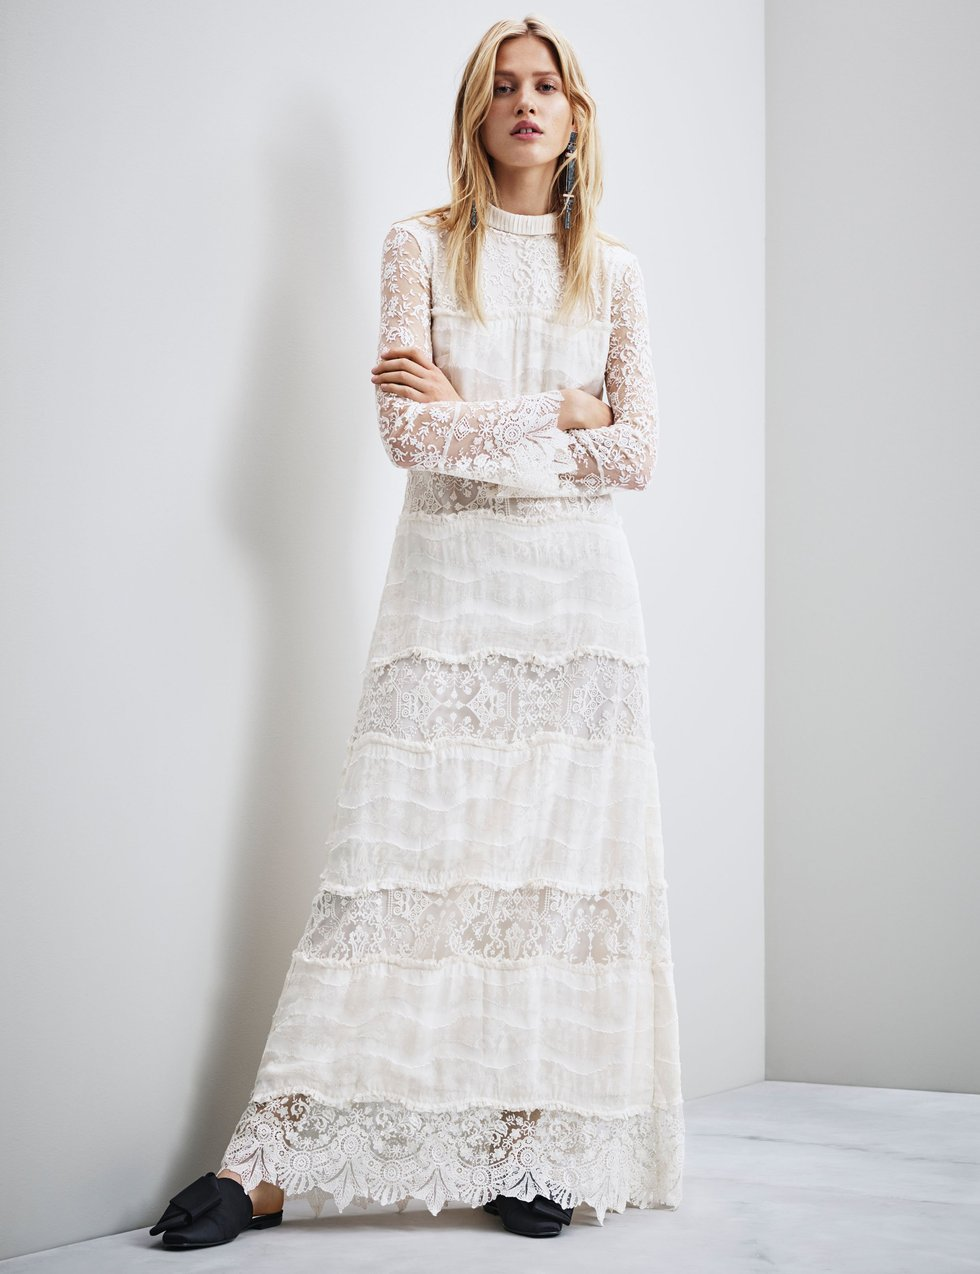 H&M Launches Super-Affordable Ethical Wedding Dress Collection ...